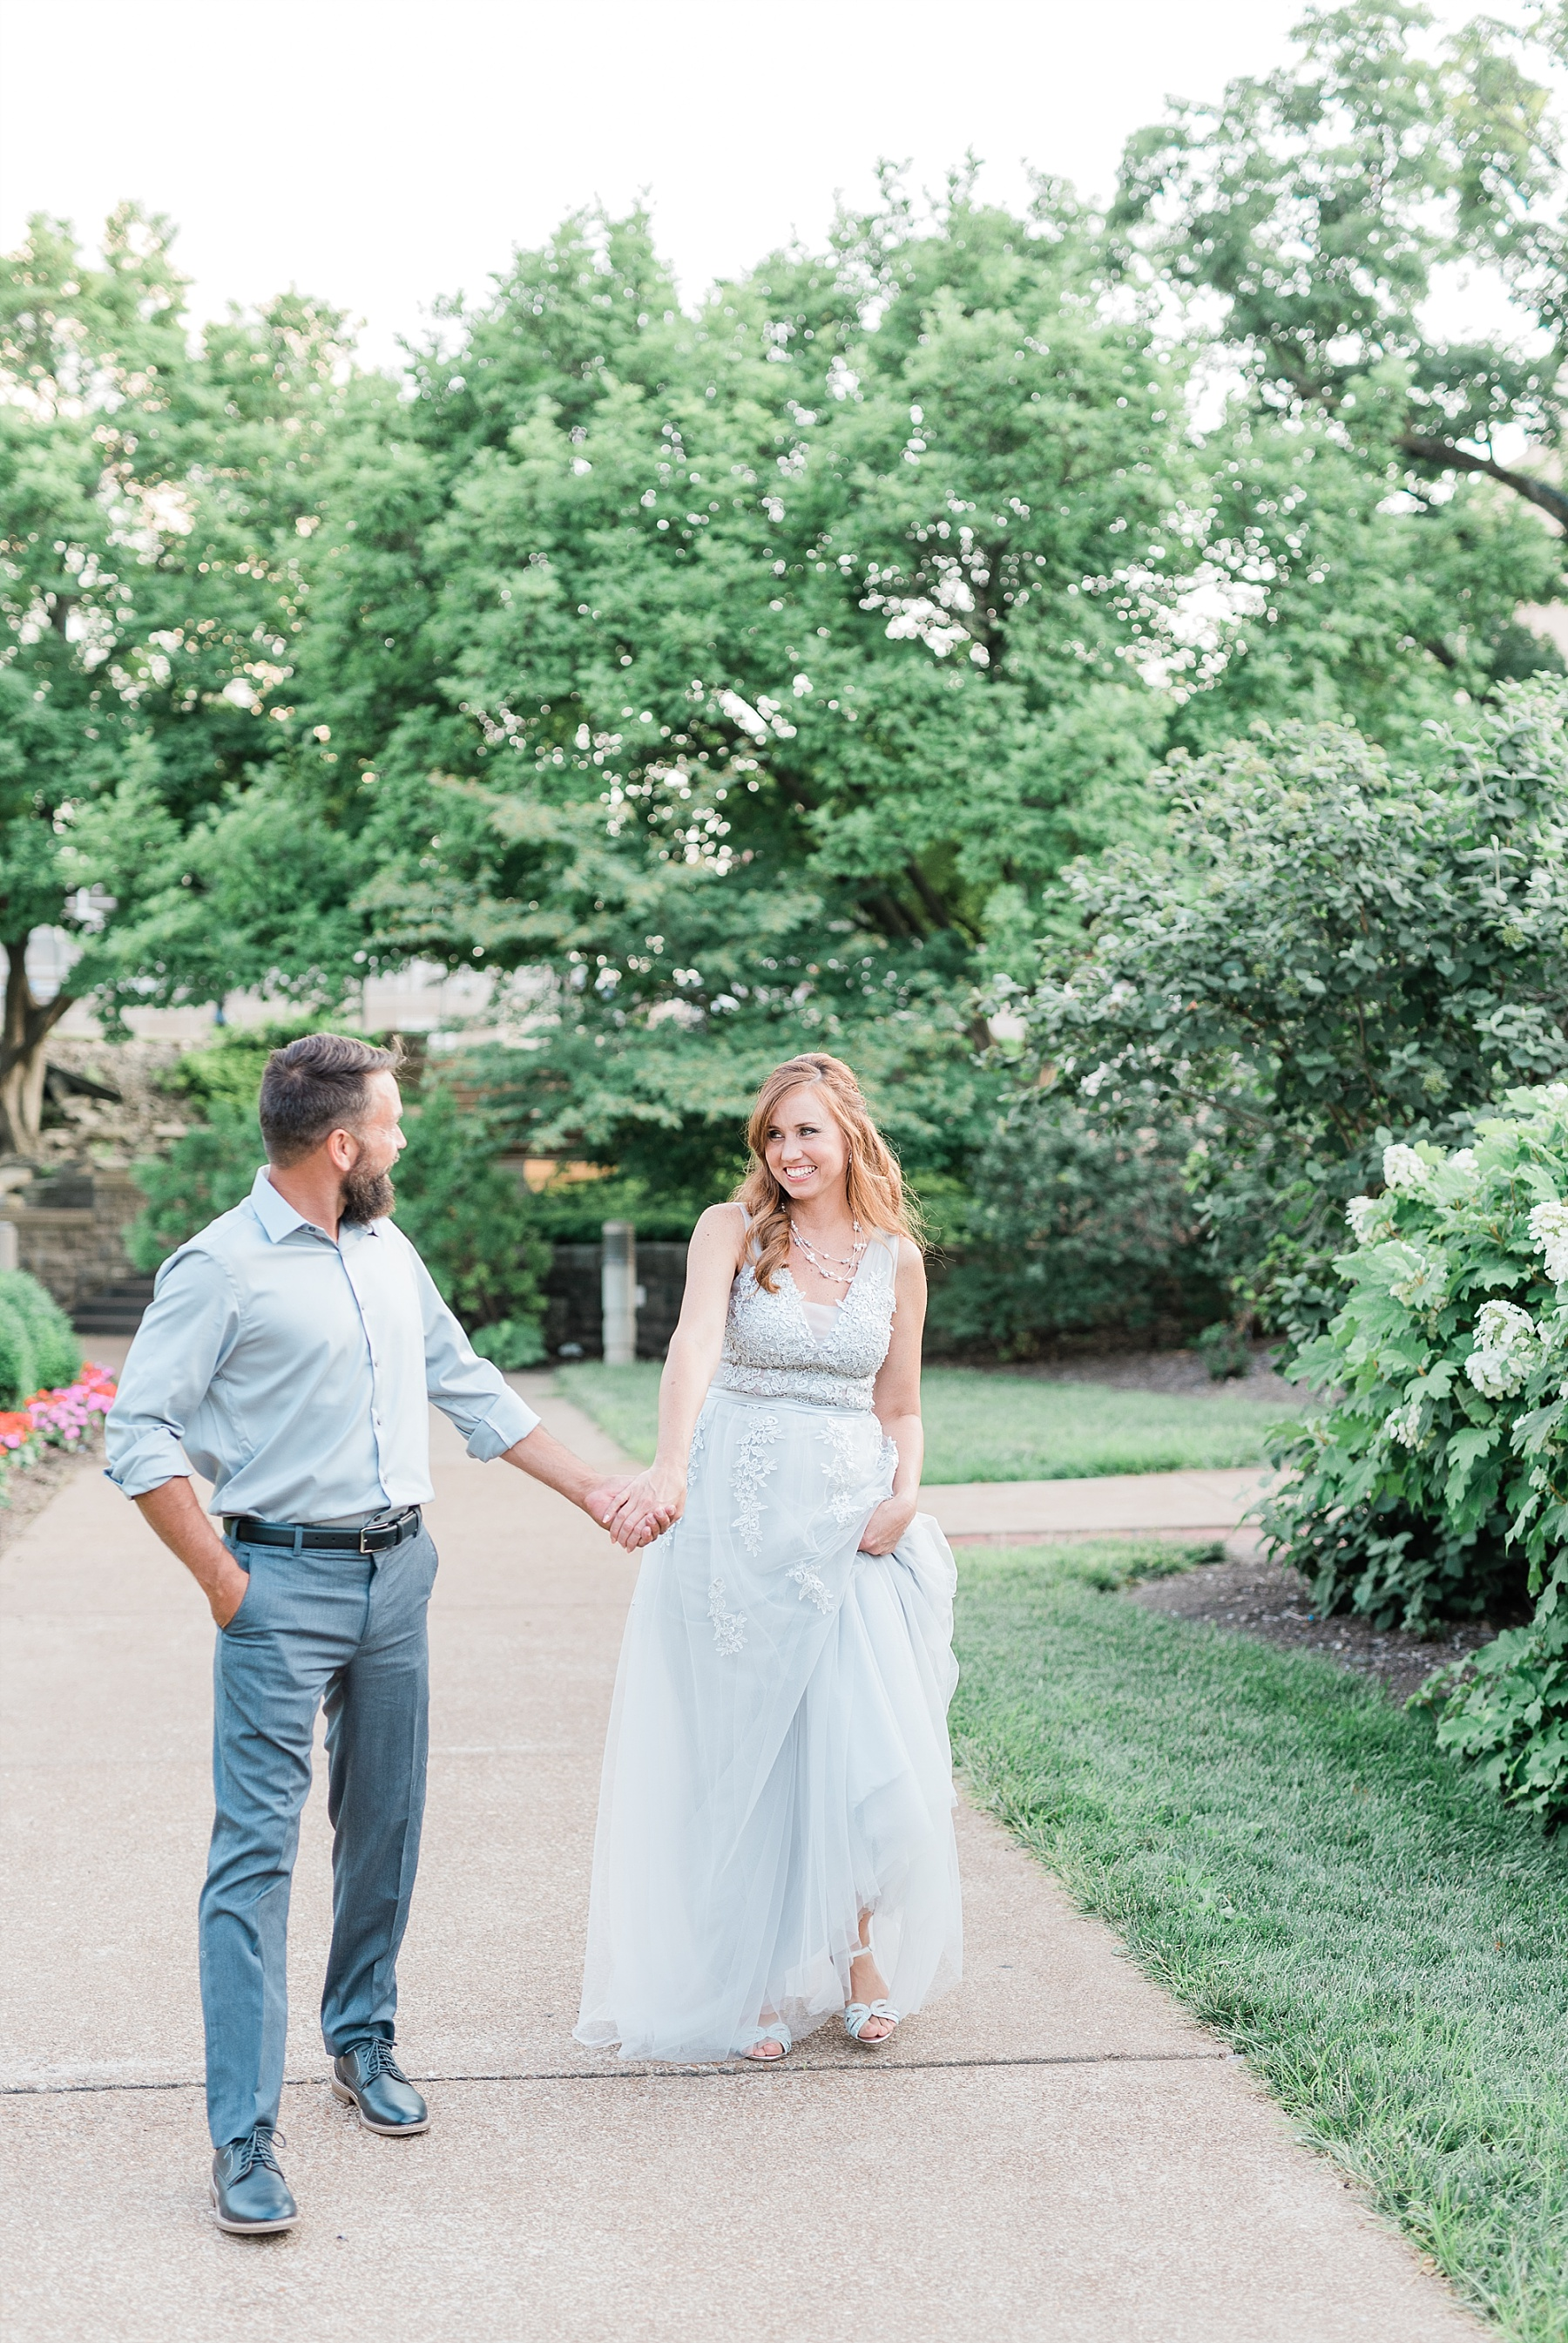 Chuck and Julie 25th Anniversary in Silver at Missouri Governor's Gardens by Kelsi Kliethermes Photography_0005.jpg